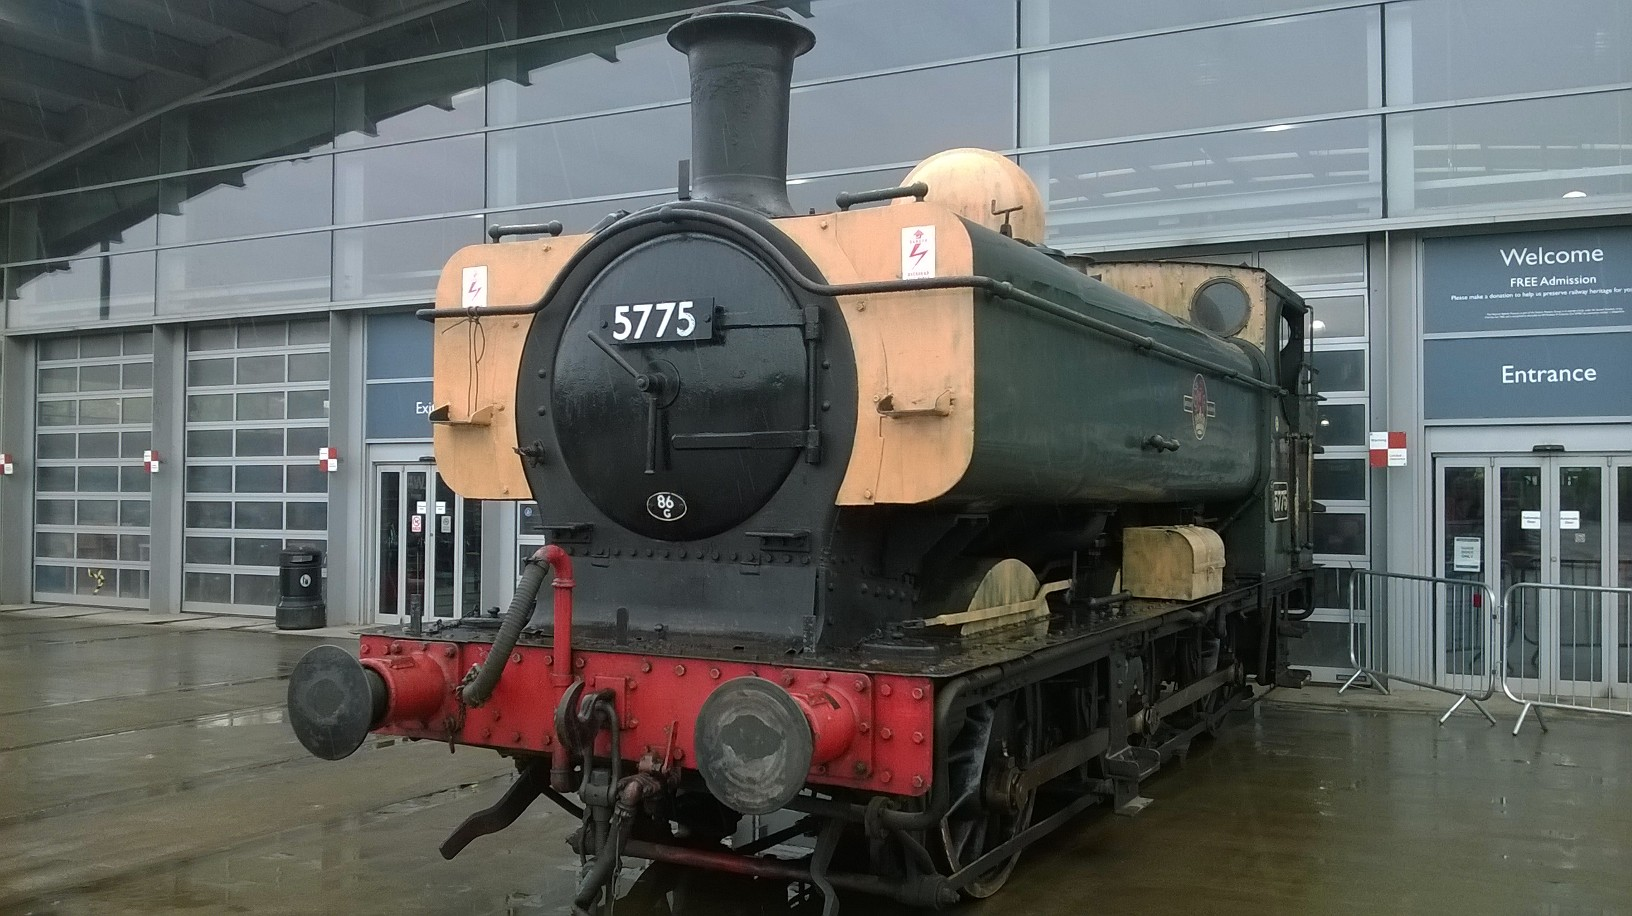 5775-arrives-at-Locomotion-May-22-2014